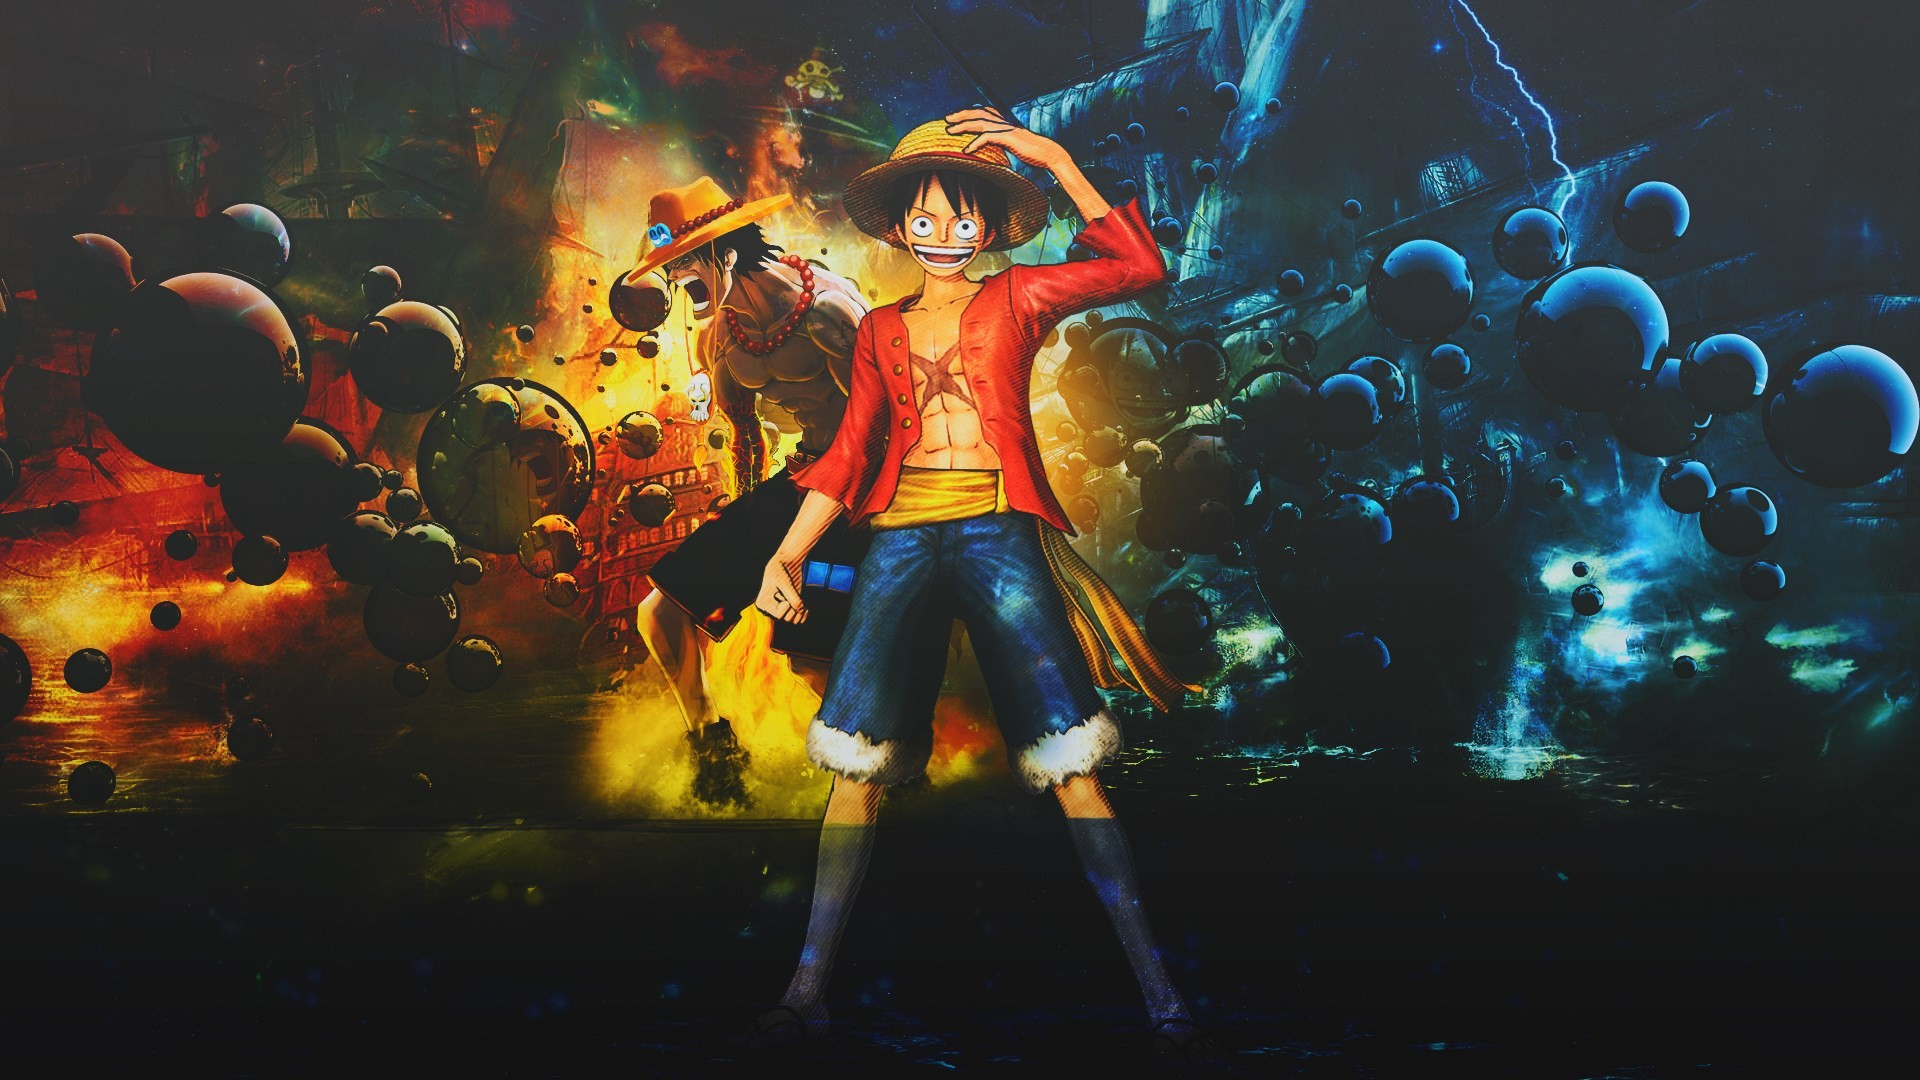 Res: 1920x1080, One Piece Wallpaper